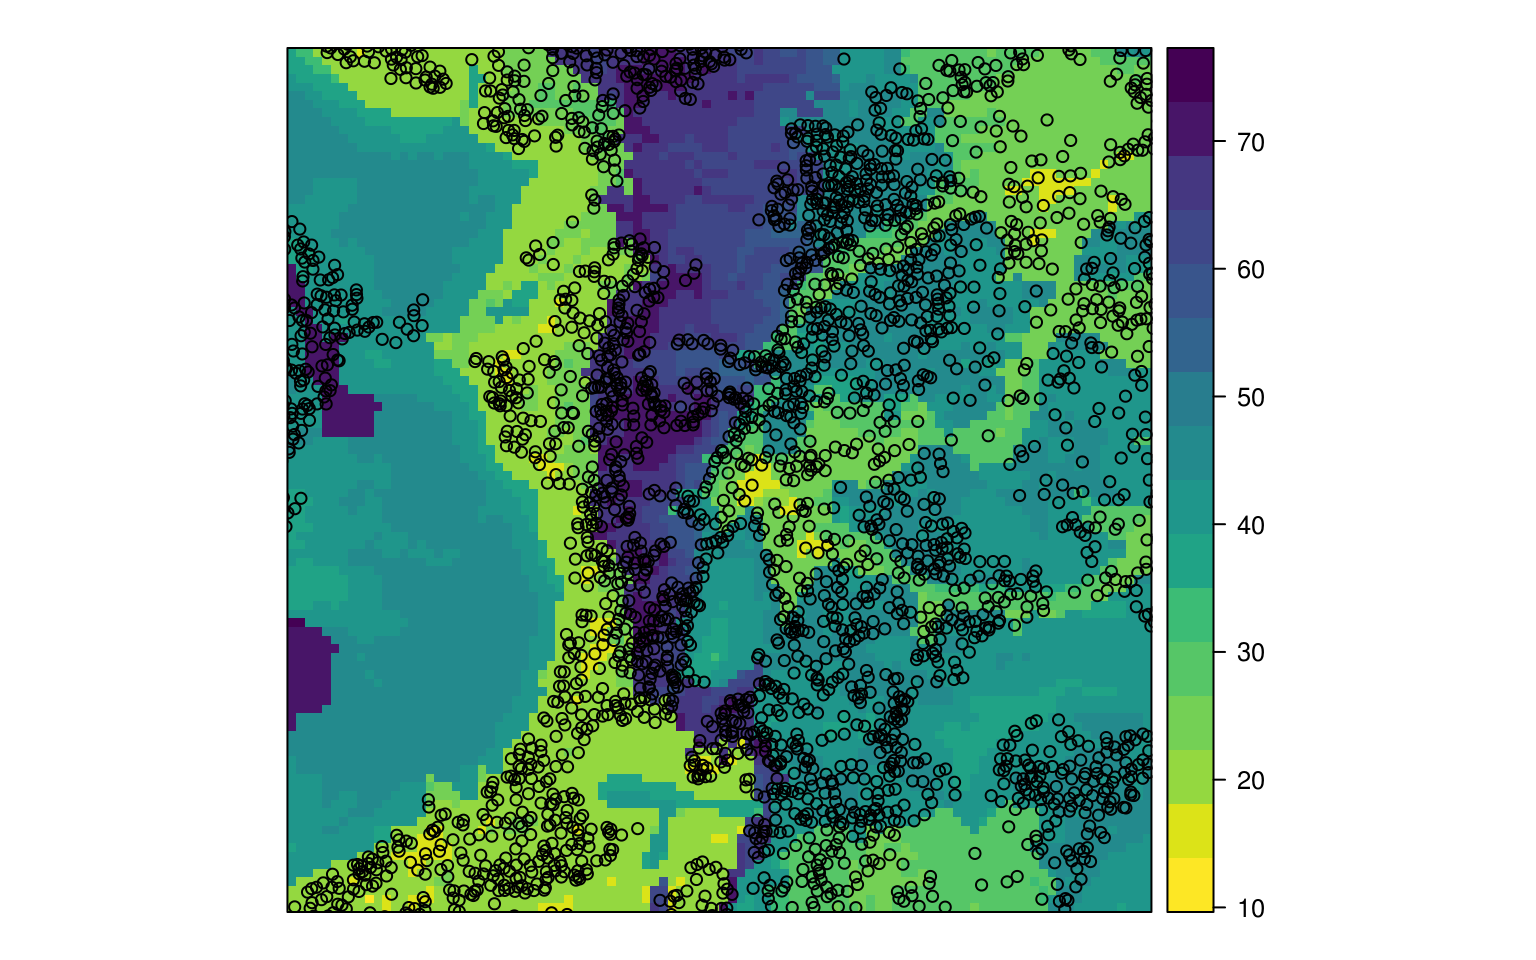 6 Machine Learning Algorithms for soil mapping | Predictive Soil ...